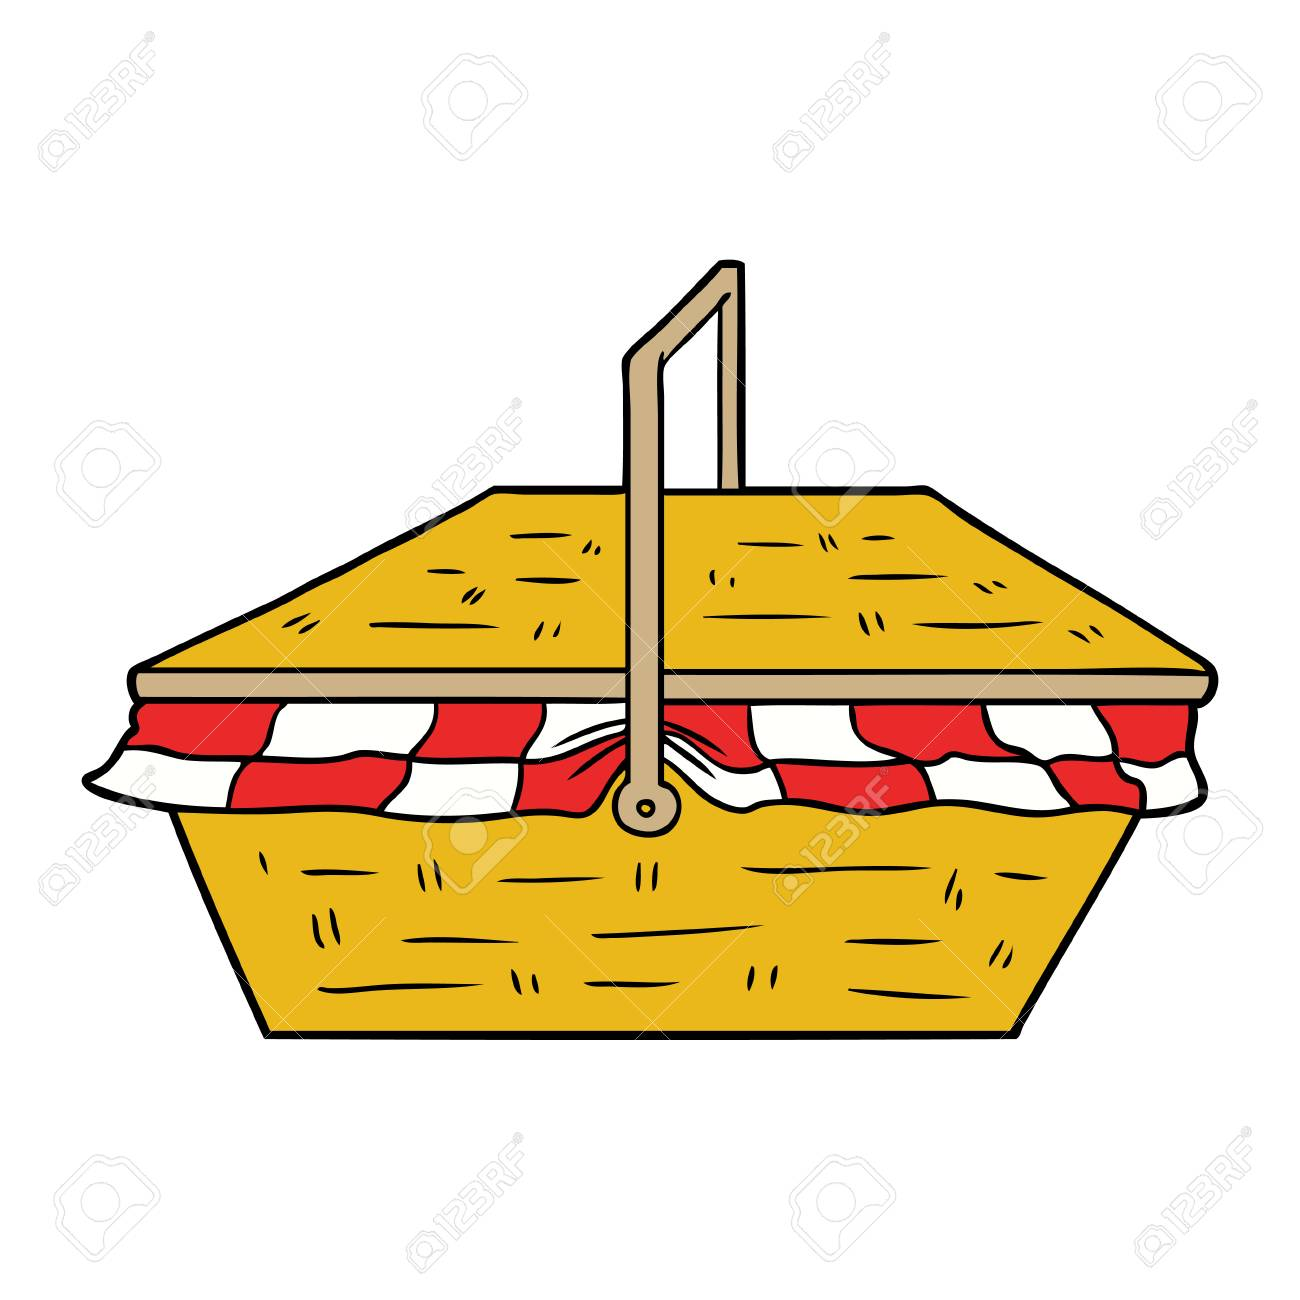 Cartoon Picnic Basket Royalty Free Cliparts Vectors And Stock Illustration Image 94854297